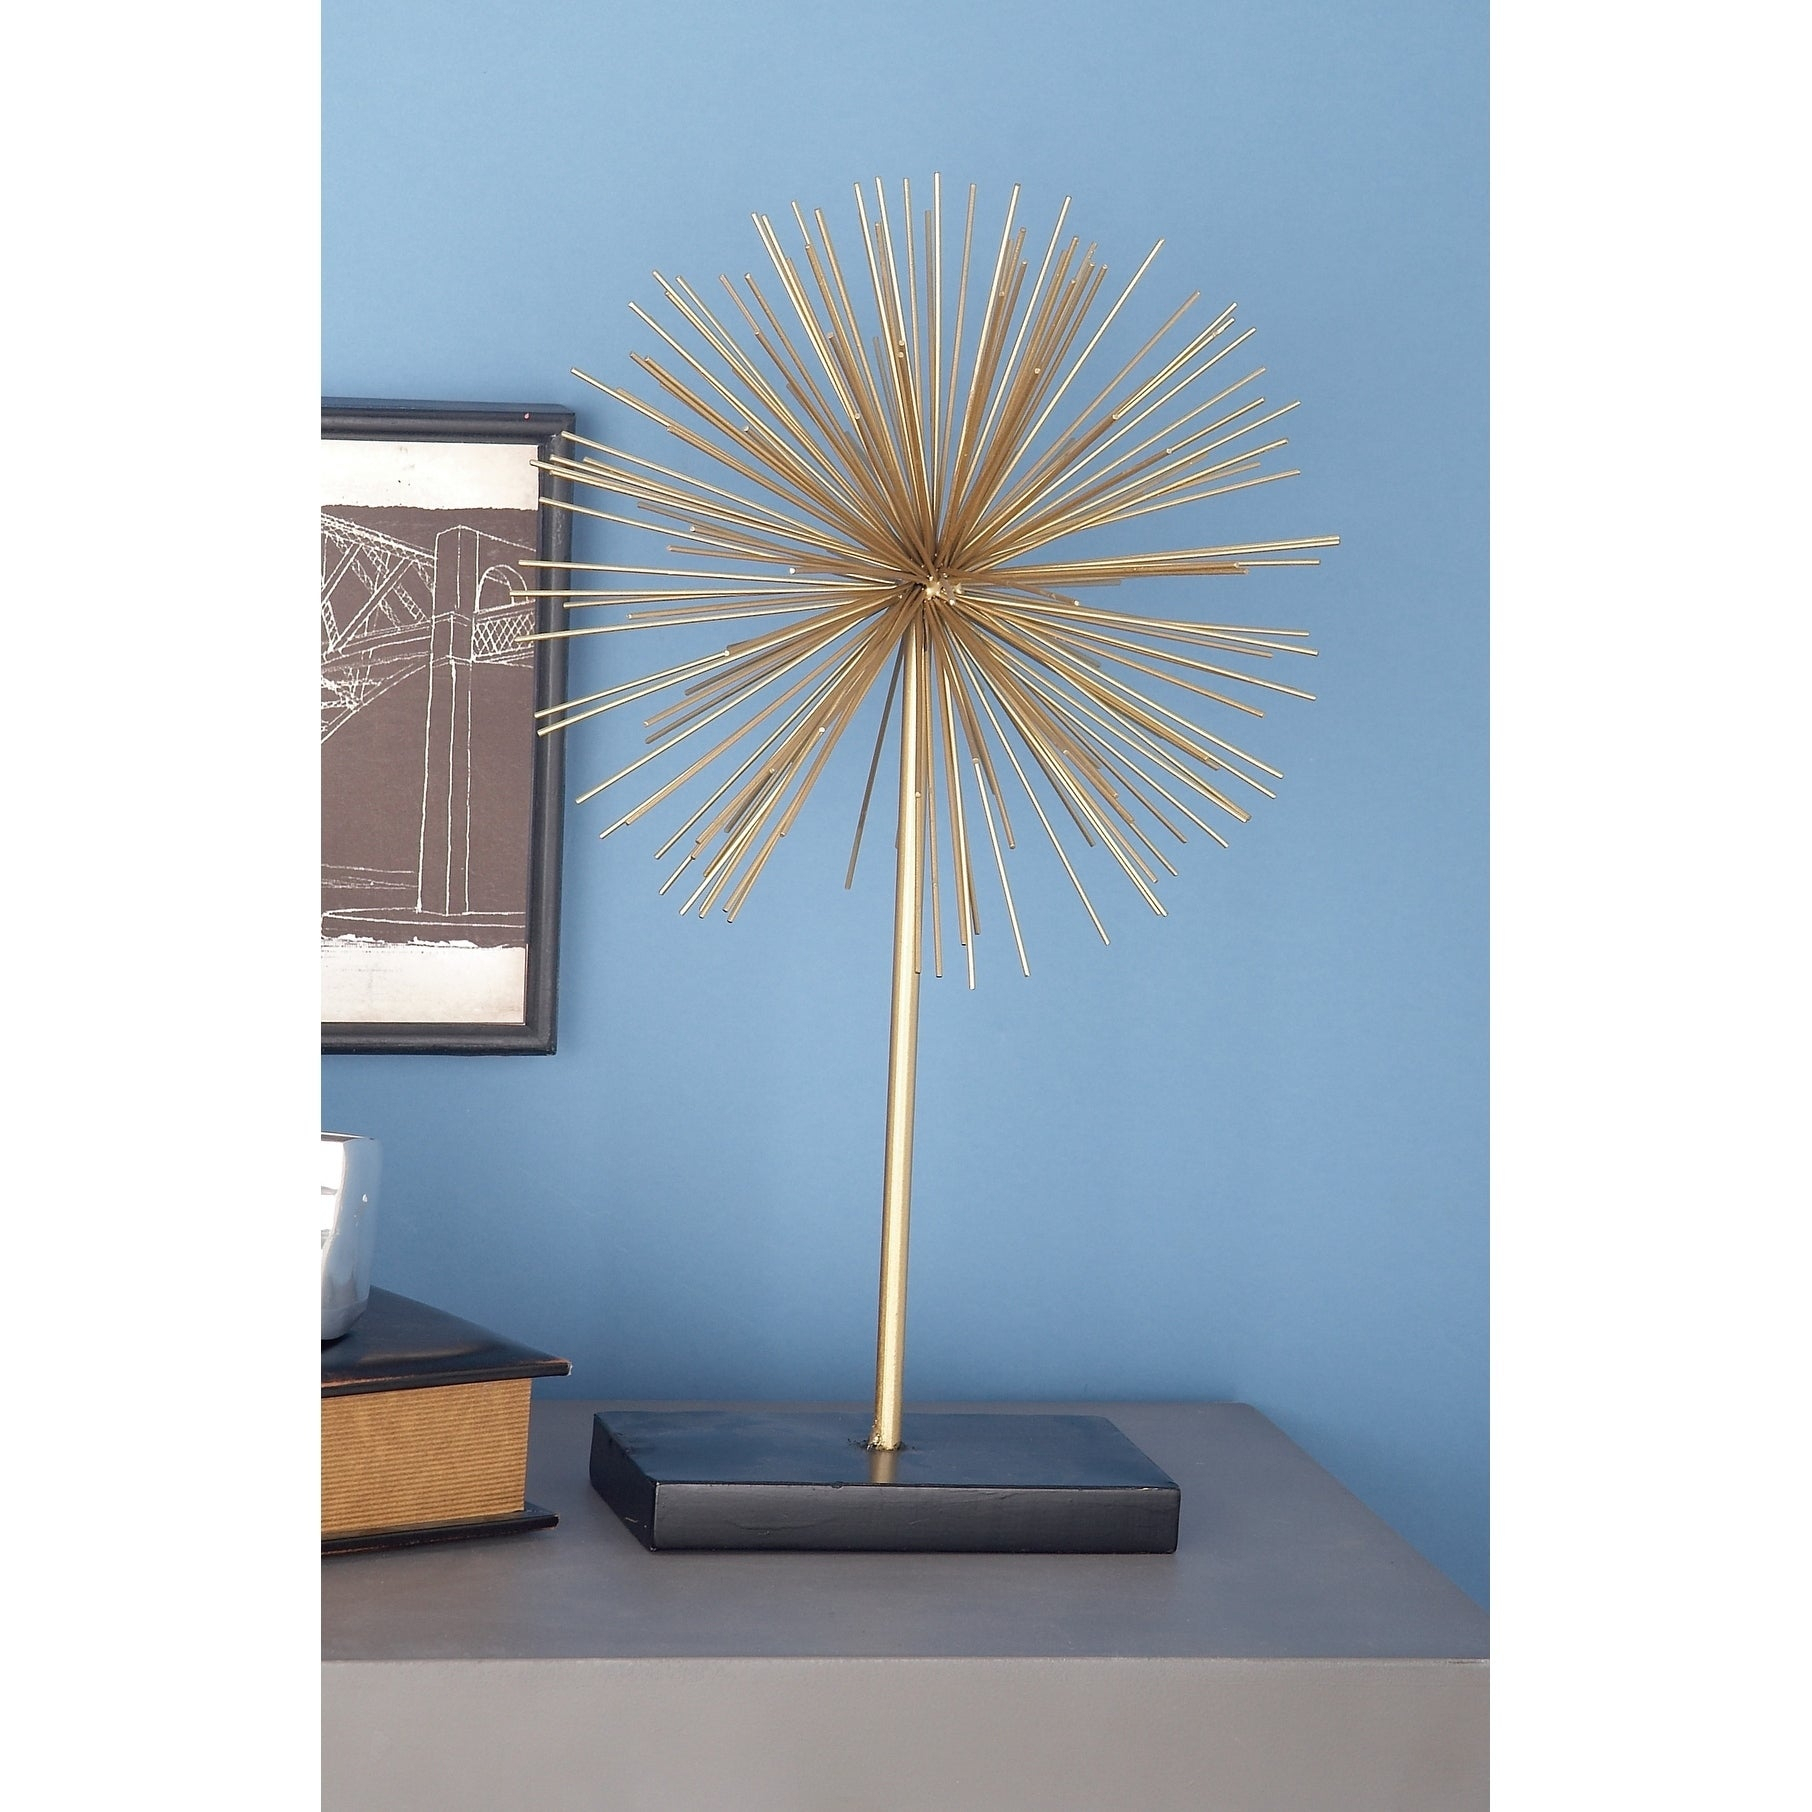 "Tall Contemporary Style 3D Round Gold Metal Starburst Sculptures On Black  Stands Set Of 3 - 11"", 15"", 20"" throughout Set Of 3 Contemporary 6, 9, And 11 Inch Gold Tin Starburst Sculptures (Image 26 of 30)"